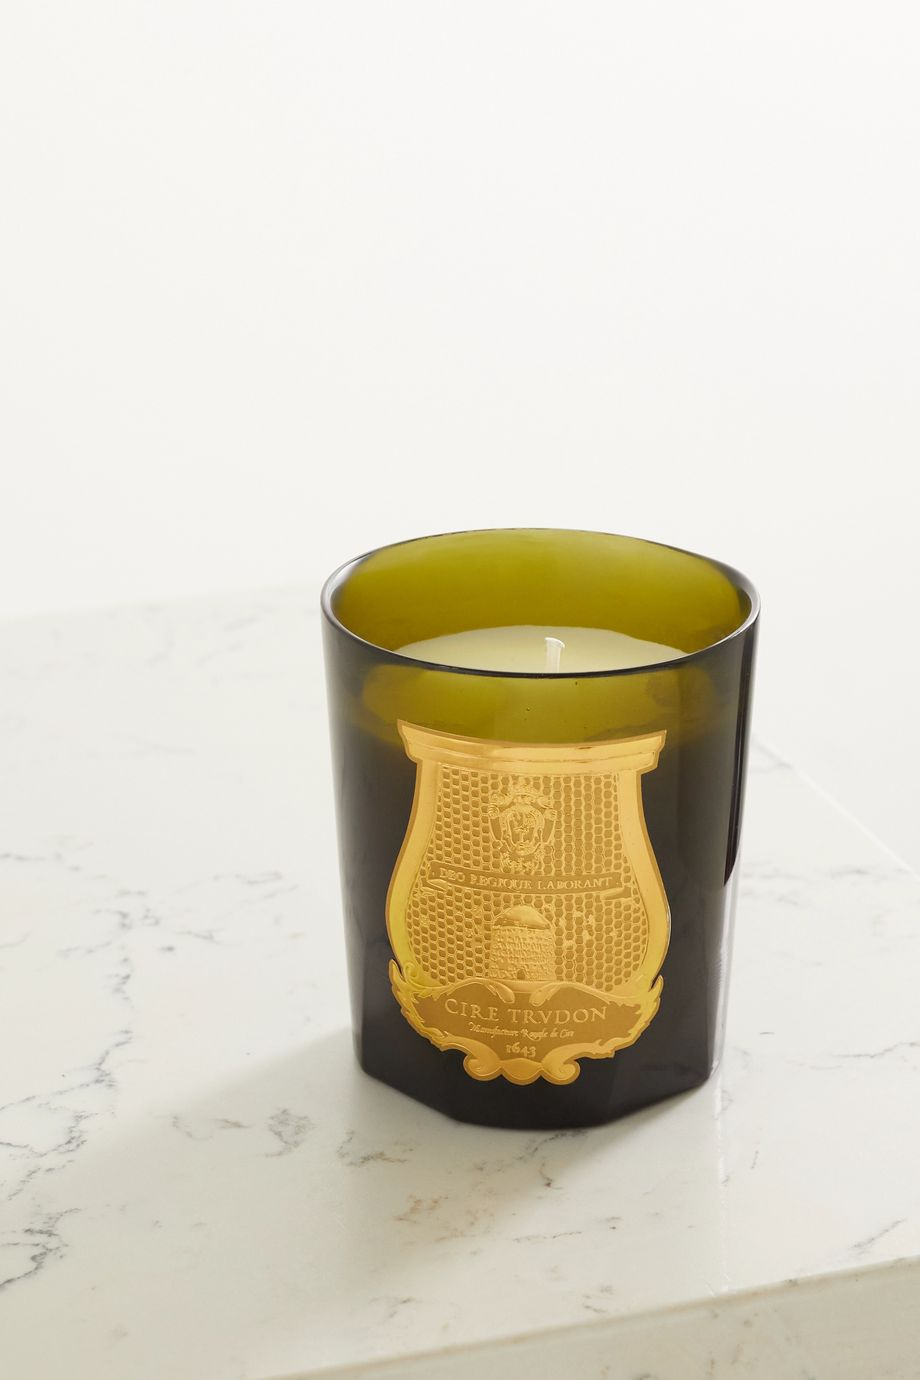 Cire Trudon Joséphine scented candle, 270g